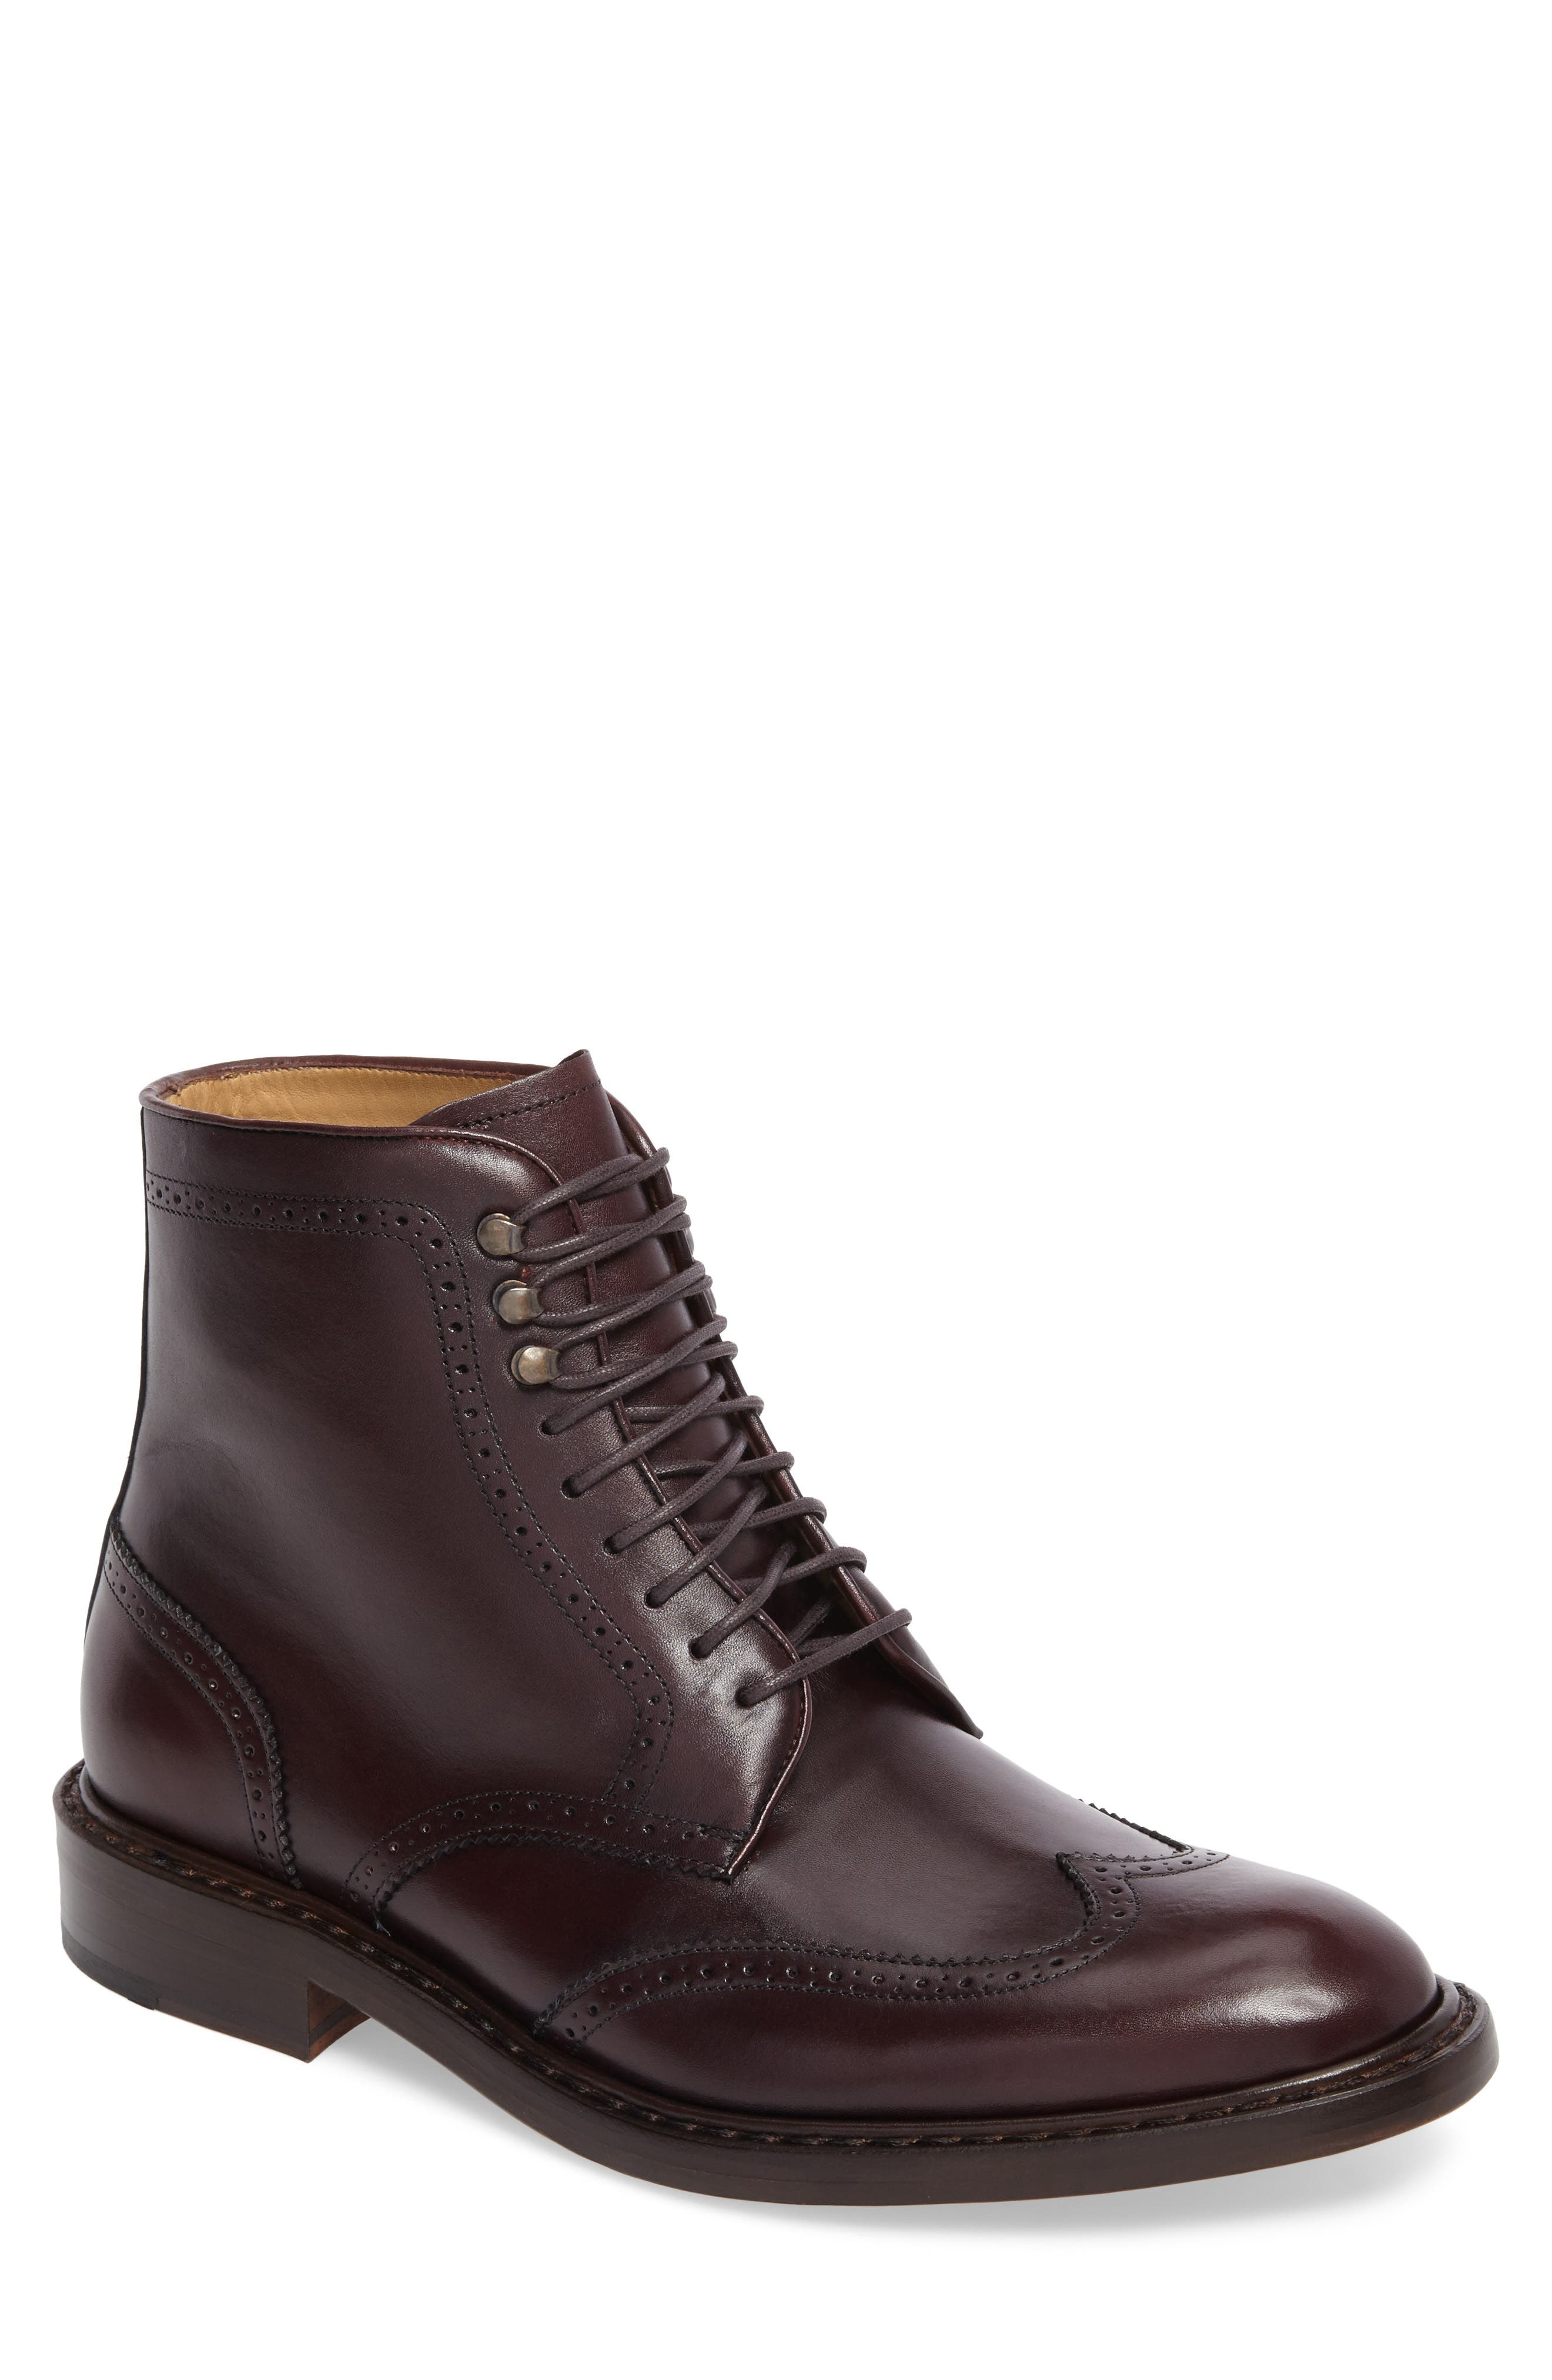 Carter Wingtip Boot,                         Main,                         color, BURGUNDY LEATHER